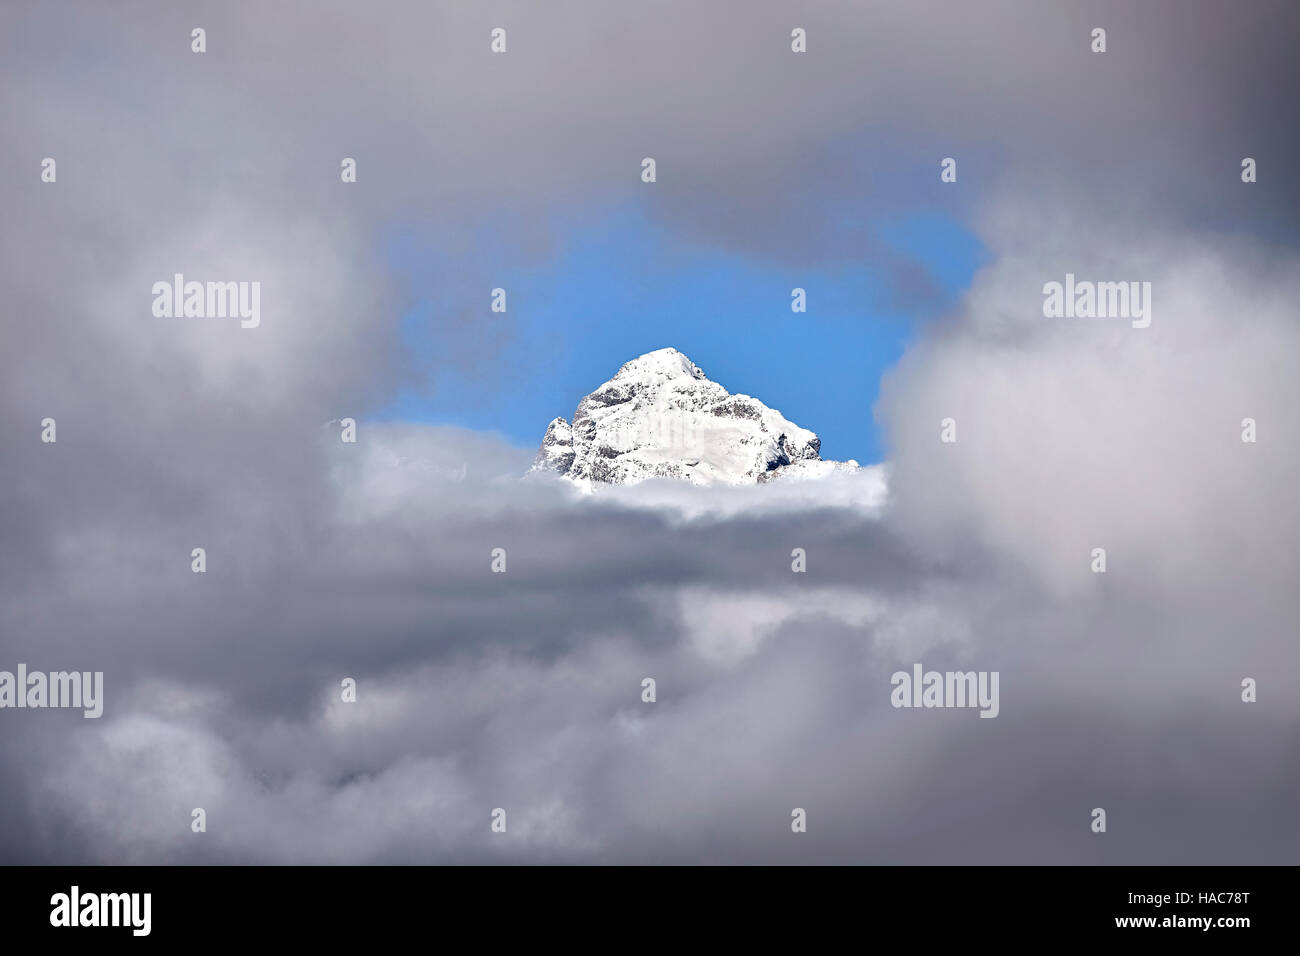 Le Grand Teton peak dans les nuages, Grand Teton National Park, Wyoming, USA. Photo Stock